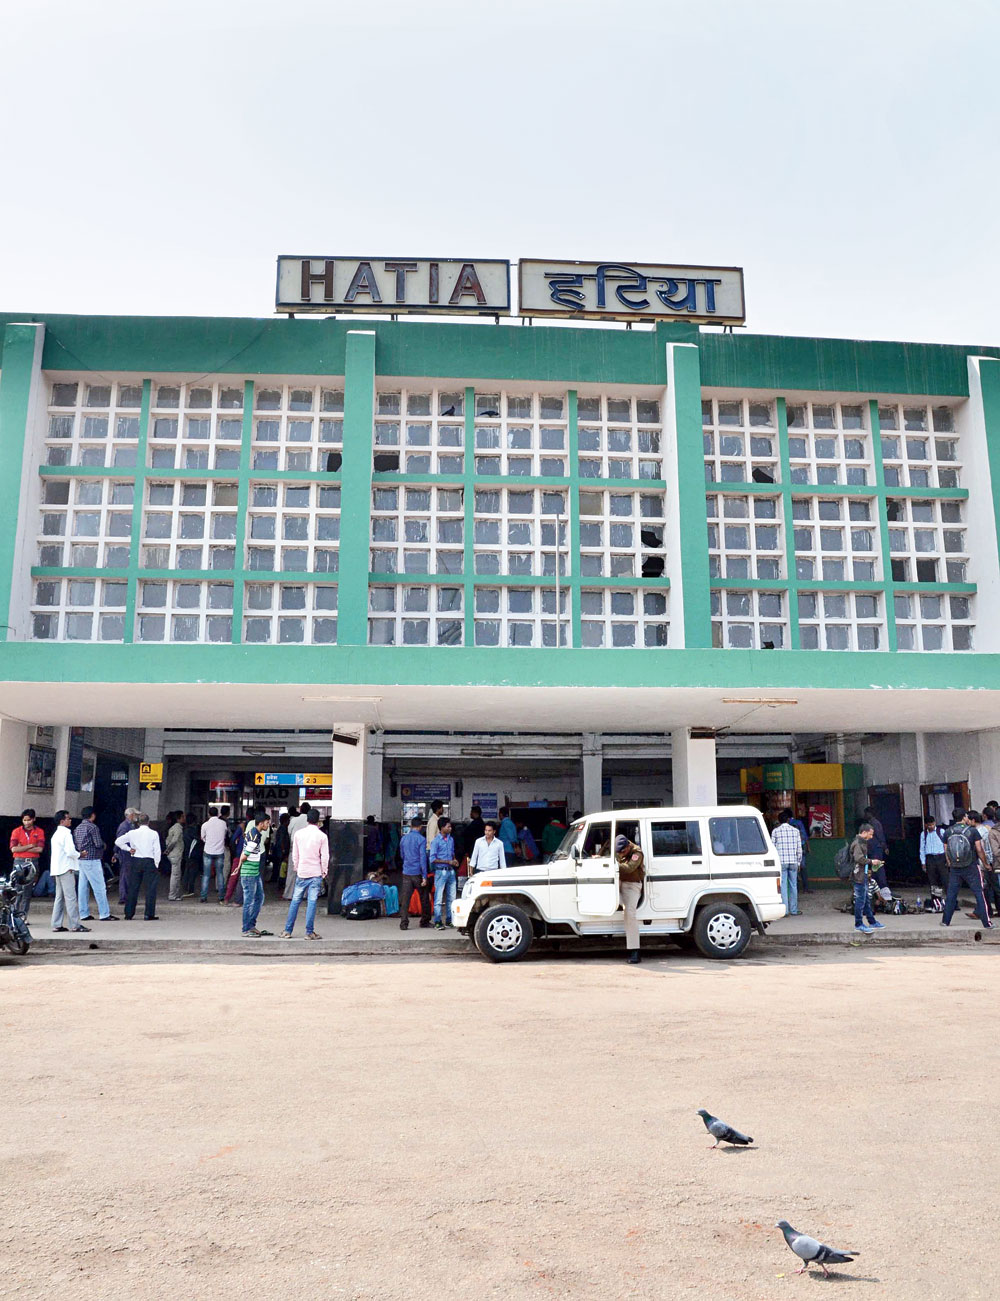 Hatia station near which the woman delivered a baby girl on board a train on Wednesday.